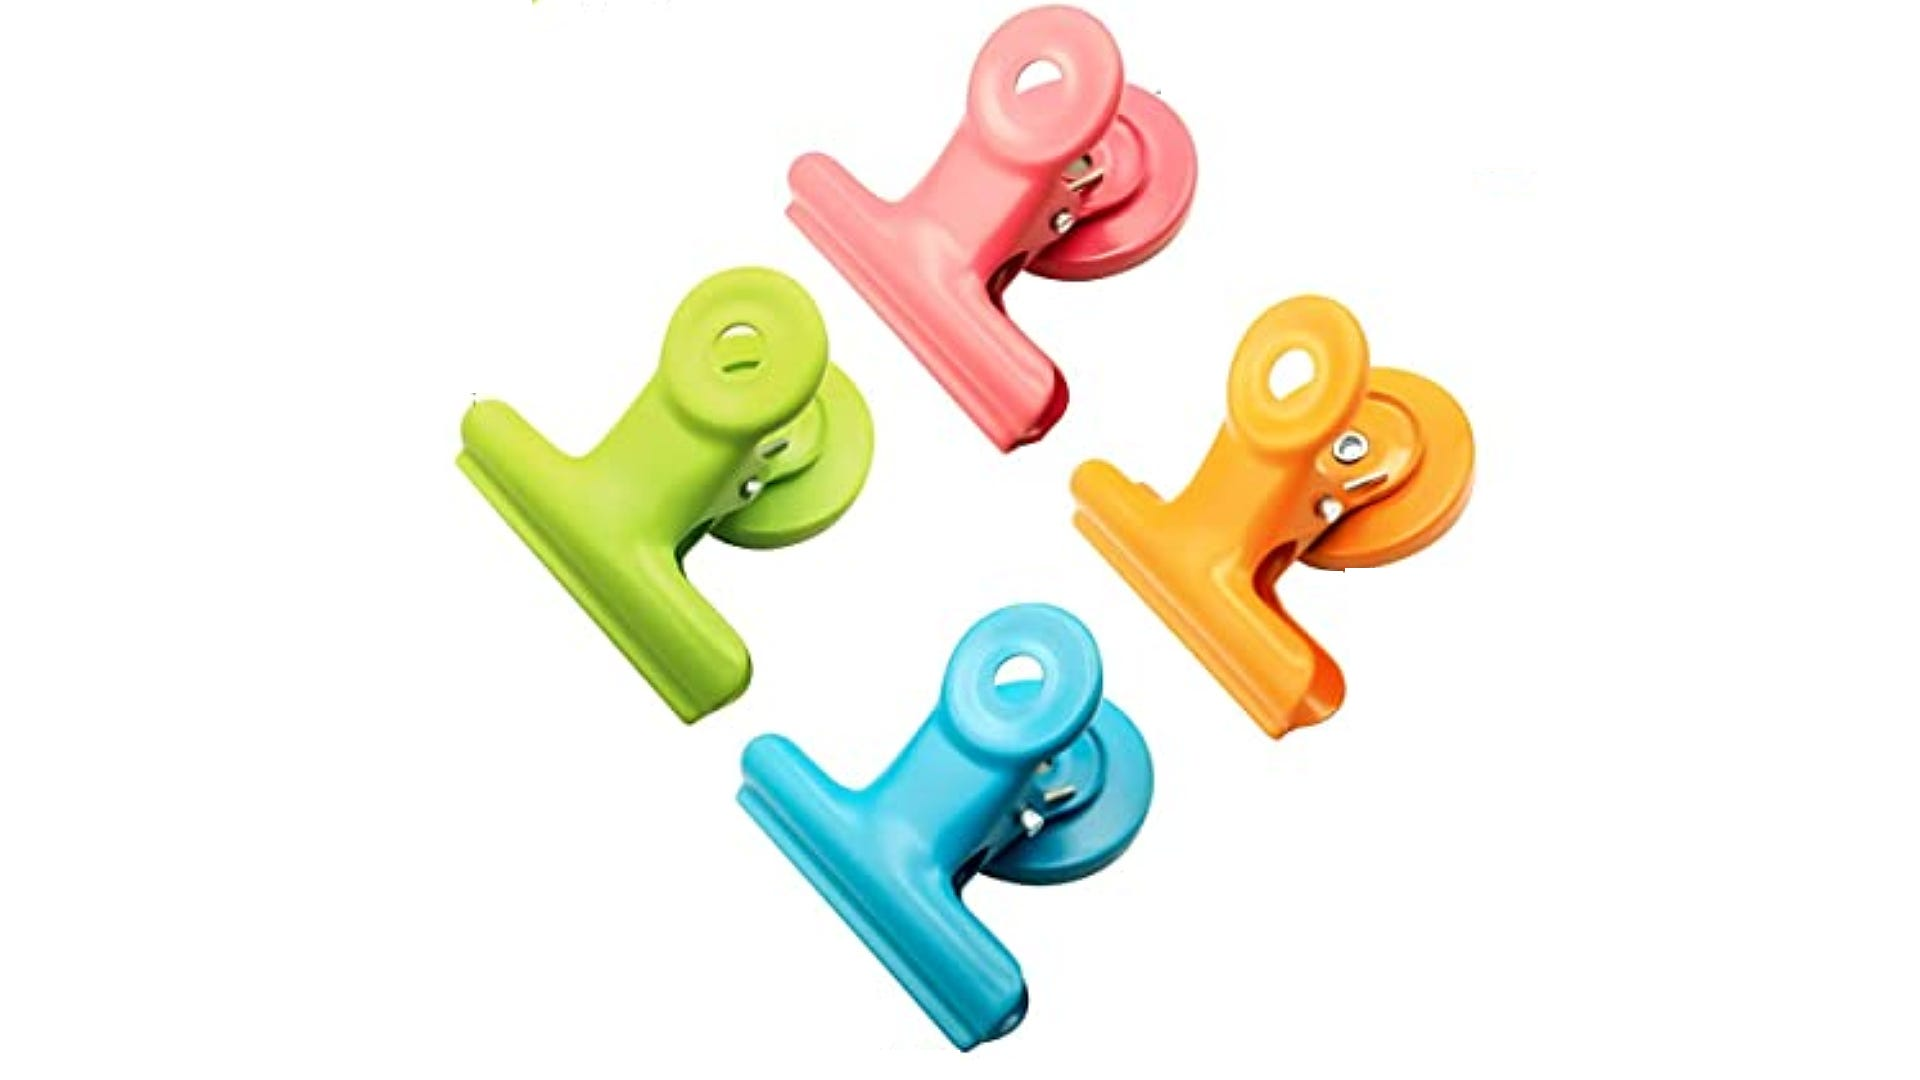 Pink, orange, green, and blue magnetic metal clips.